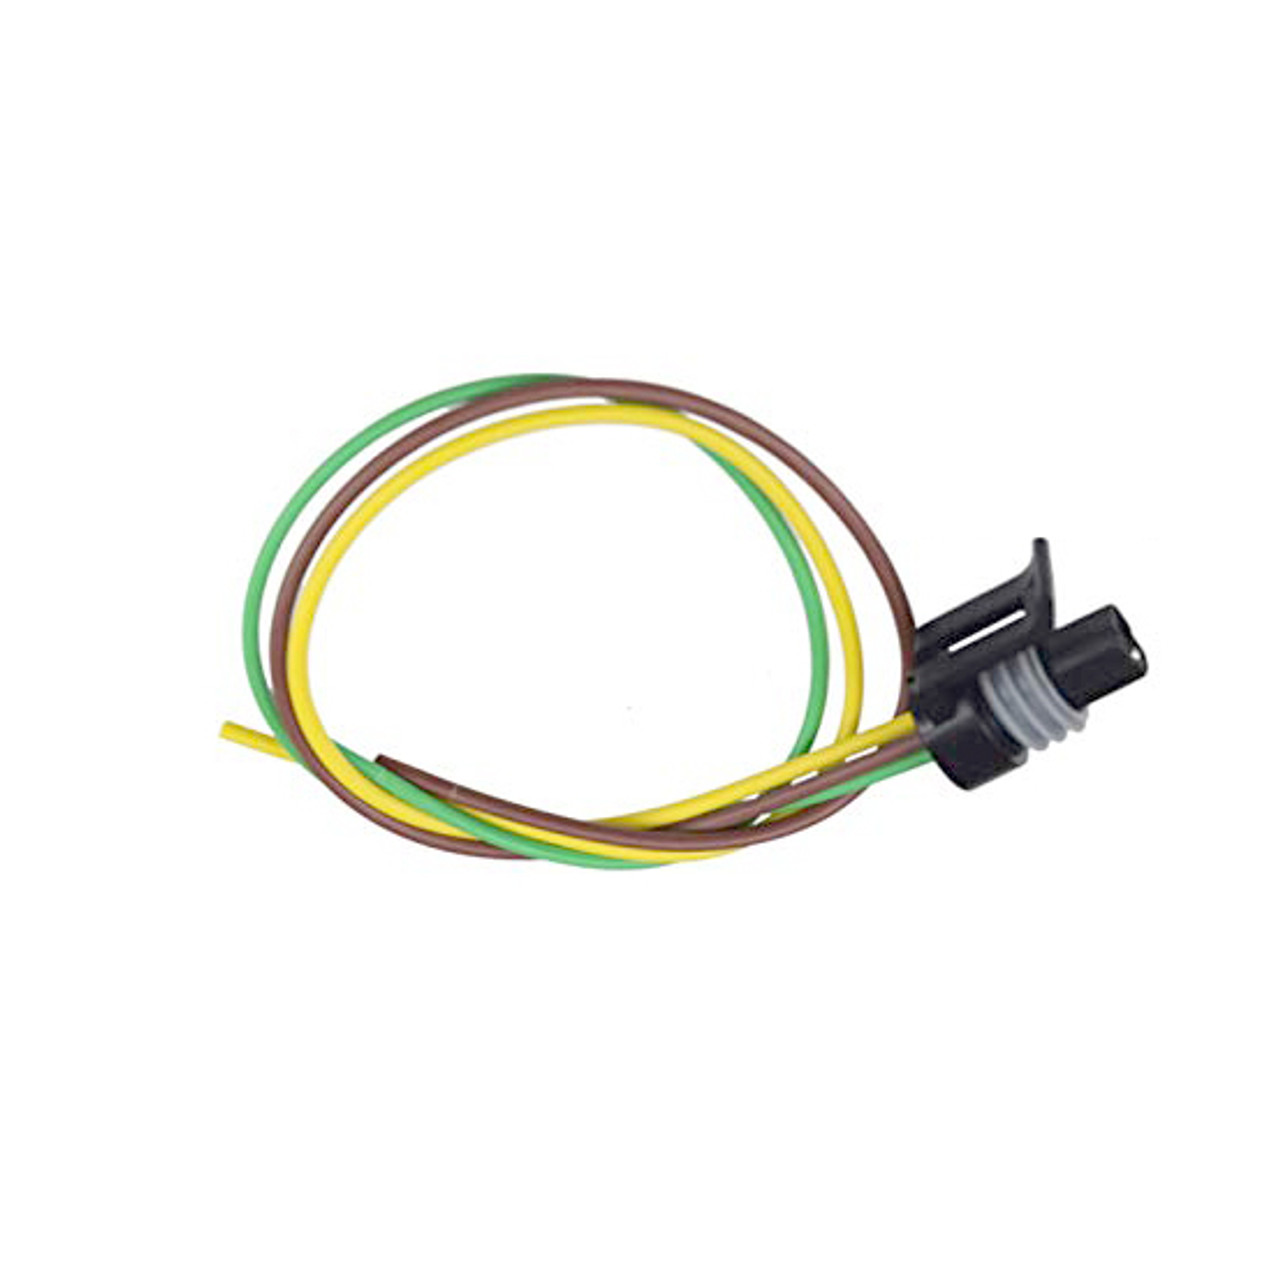 powerstroke icp ebp sensor connector | obd innovations  obd innovations